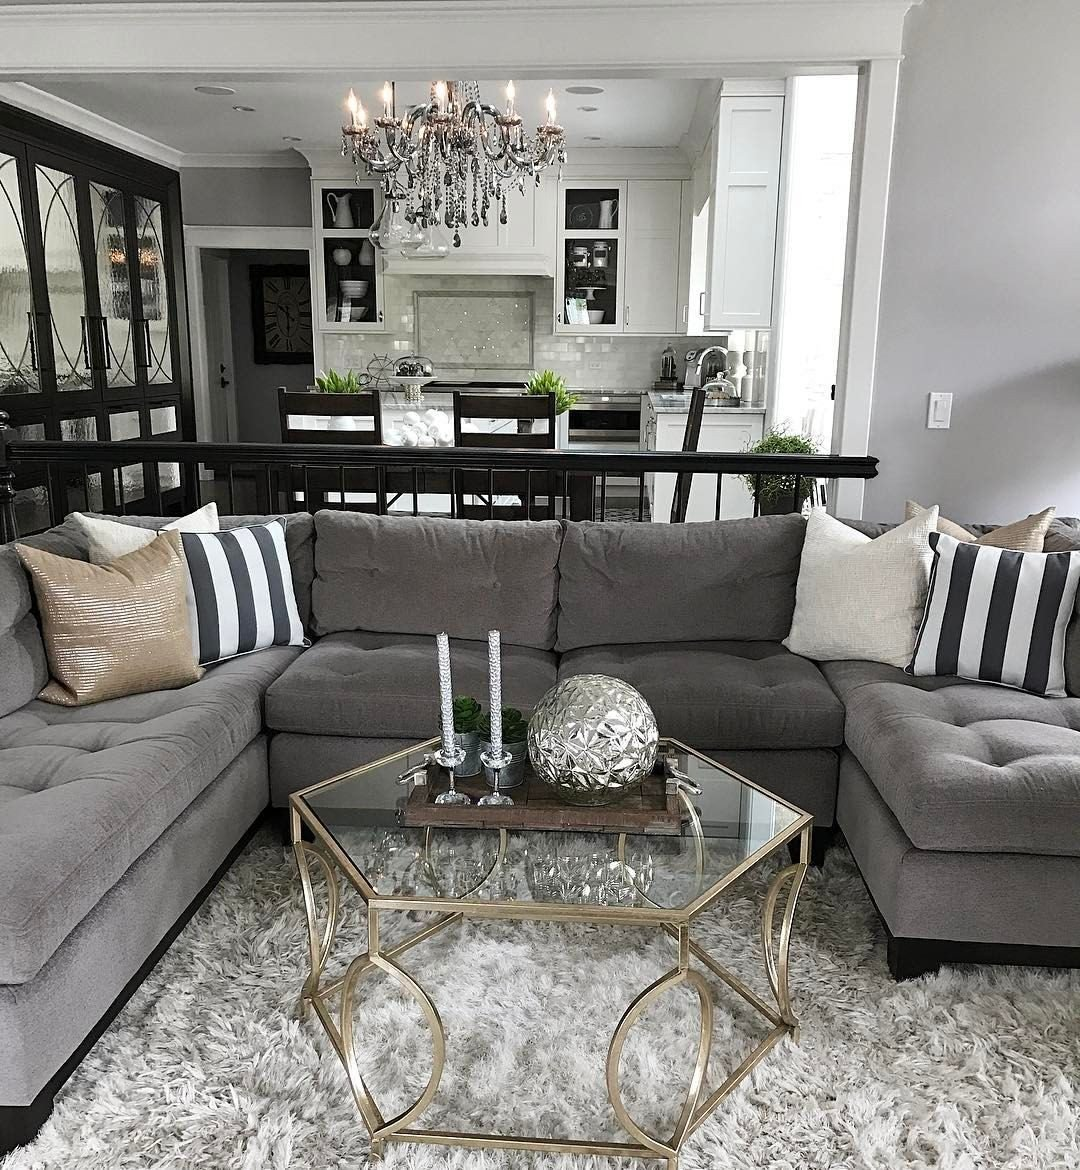 Grey Couch Living Room Decor Inspirational Change Up the Gray Couch with and Chic Black and White